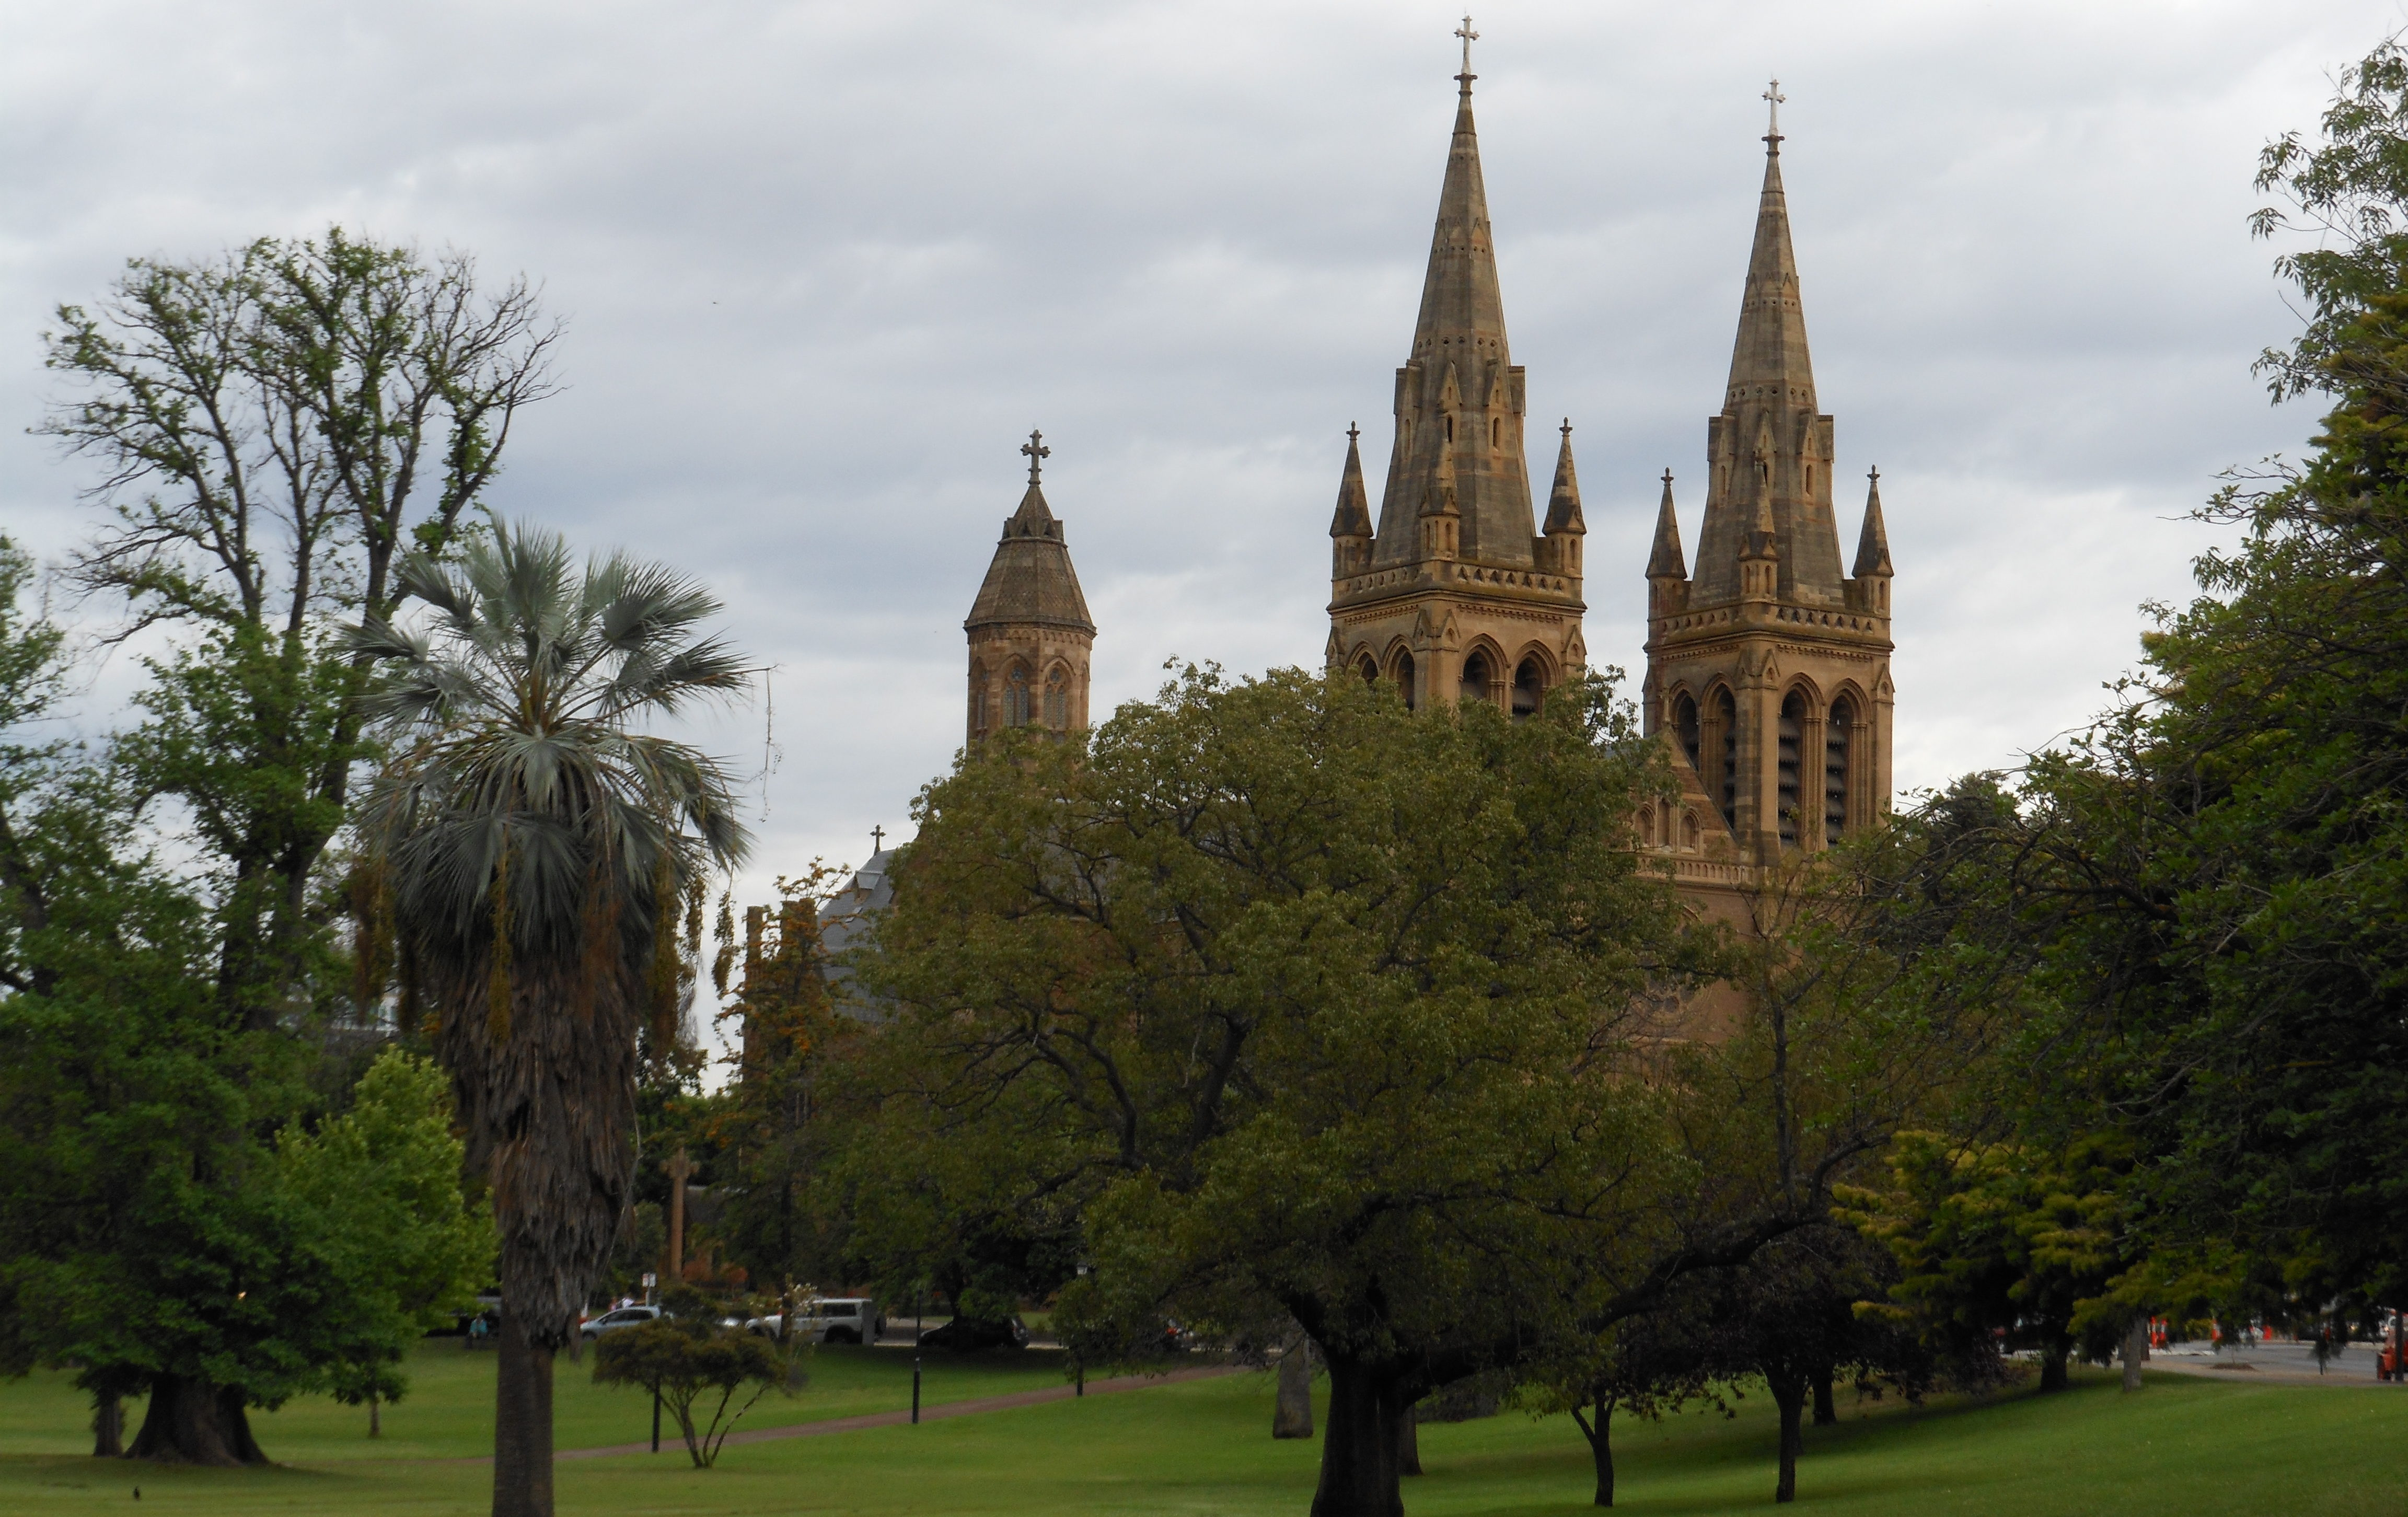 City of Churches – Adelaide, Australia